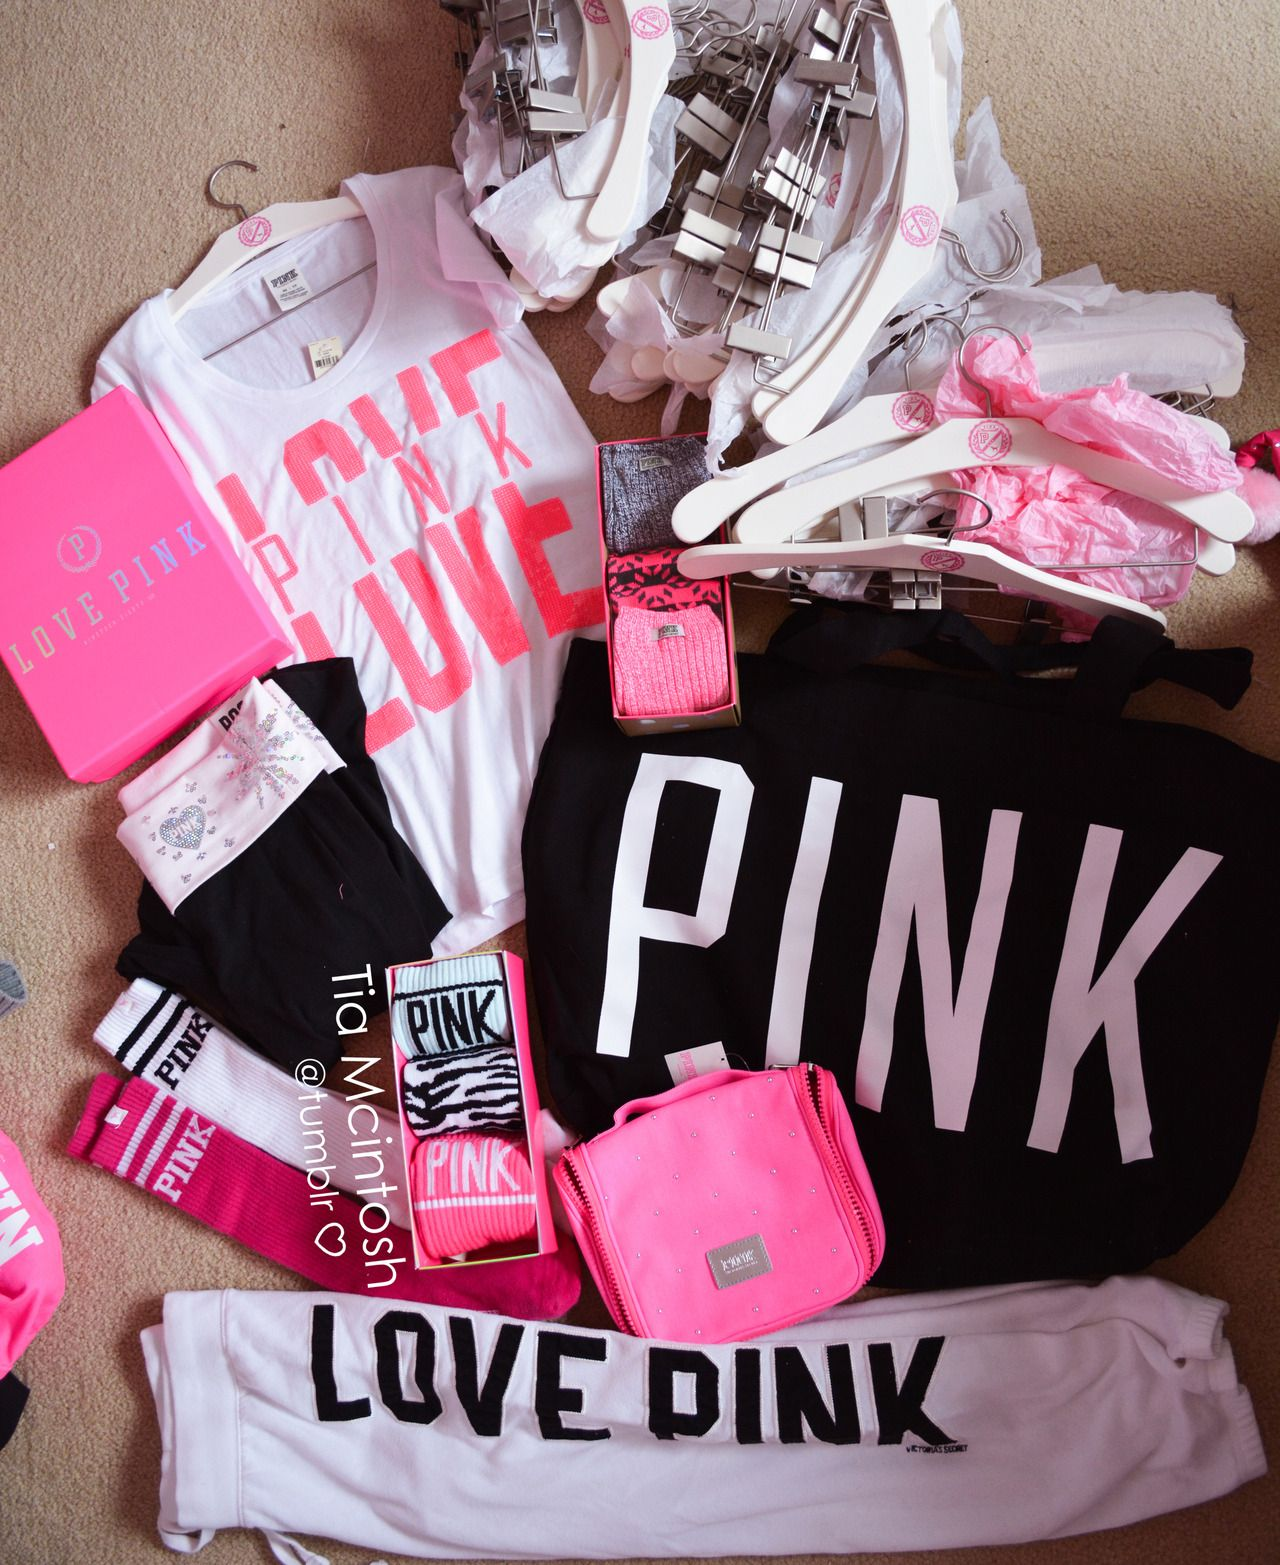 Vs Pink Gift Card Would Be A Great Birthday Present